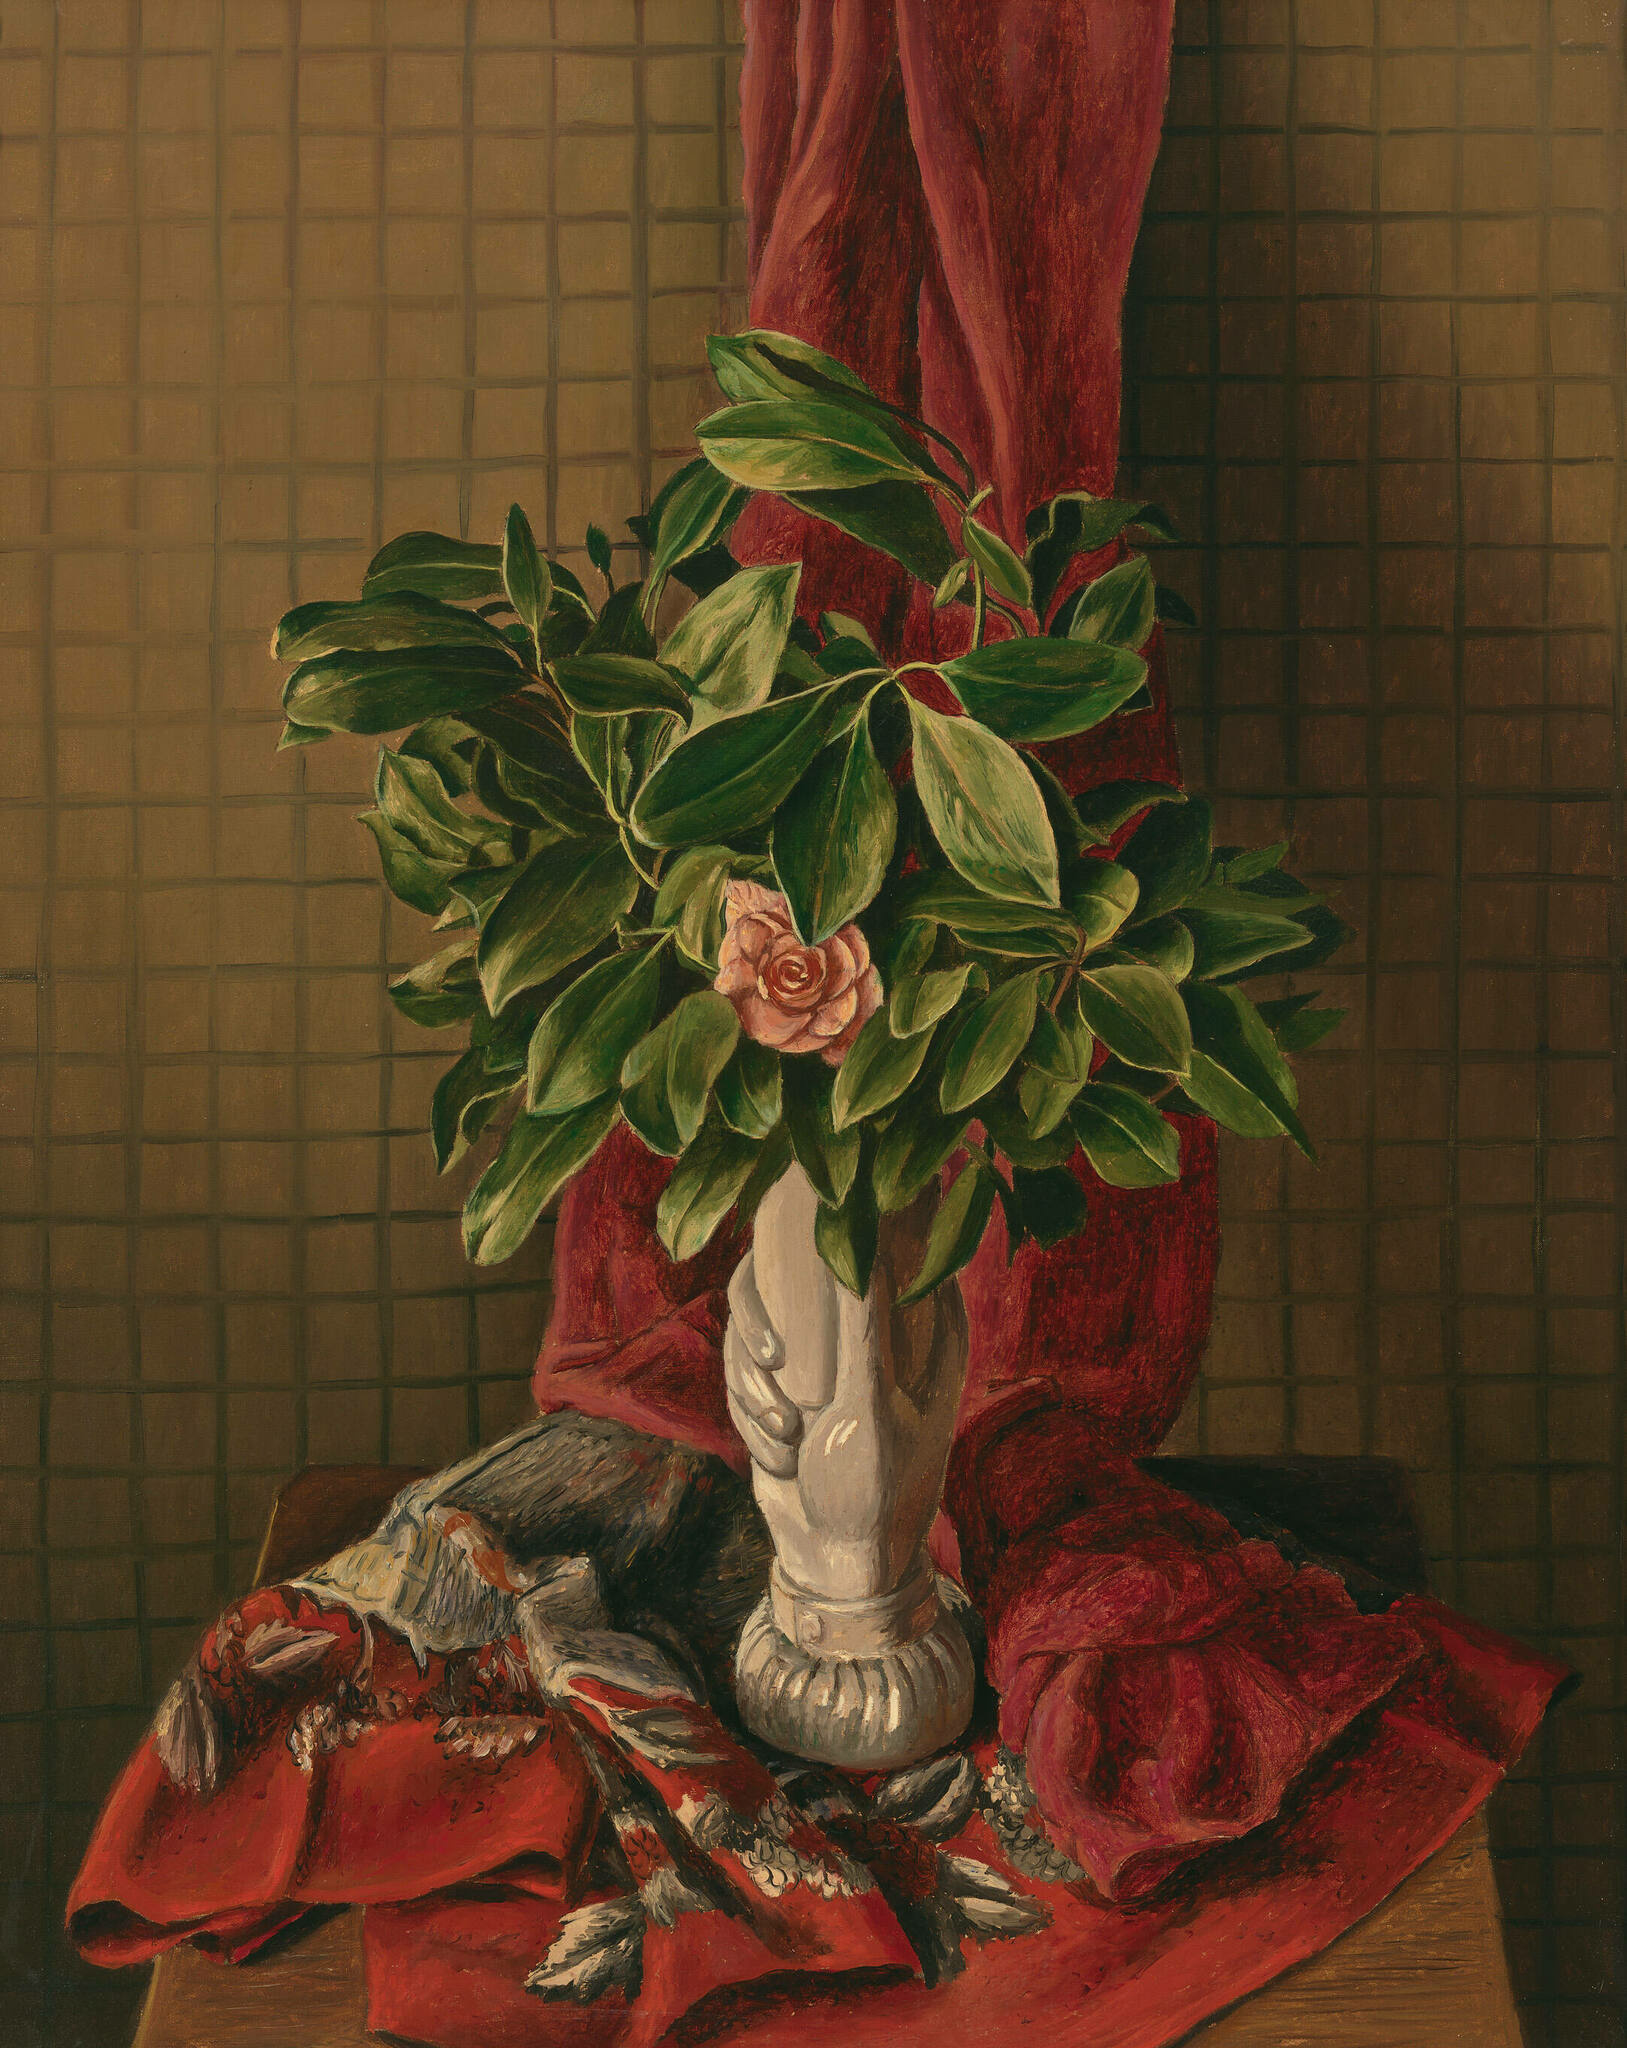 An ornate vase sits on draped red fabric, holding a full green plant with a single pink flower.